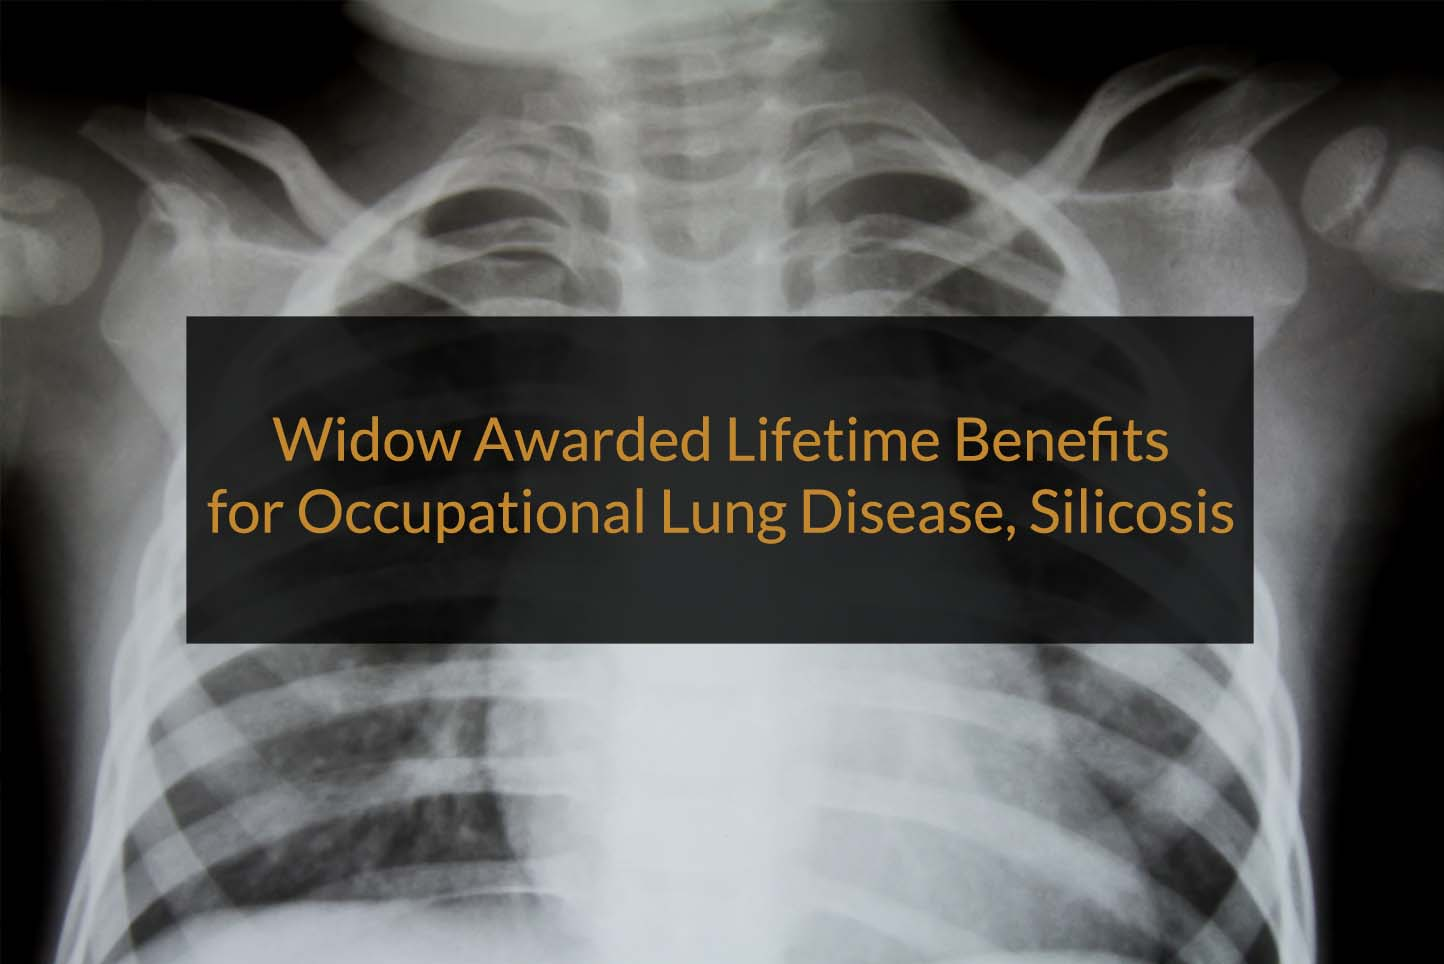 lifetime benefits for occupational lung disease silicosis